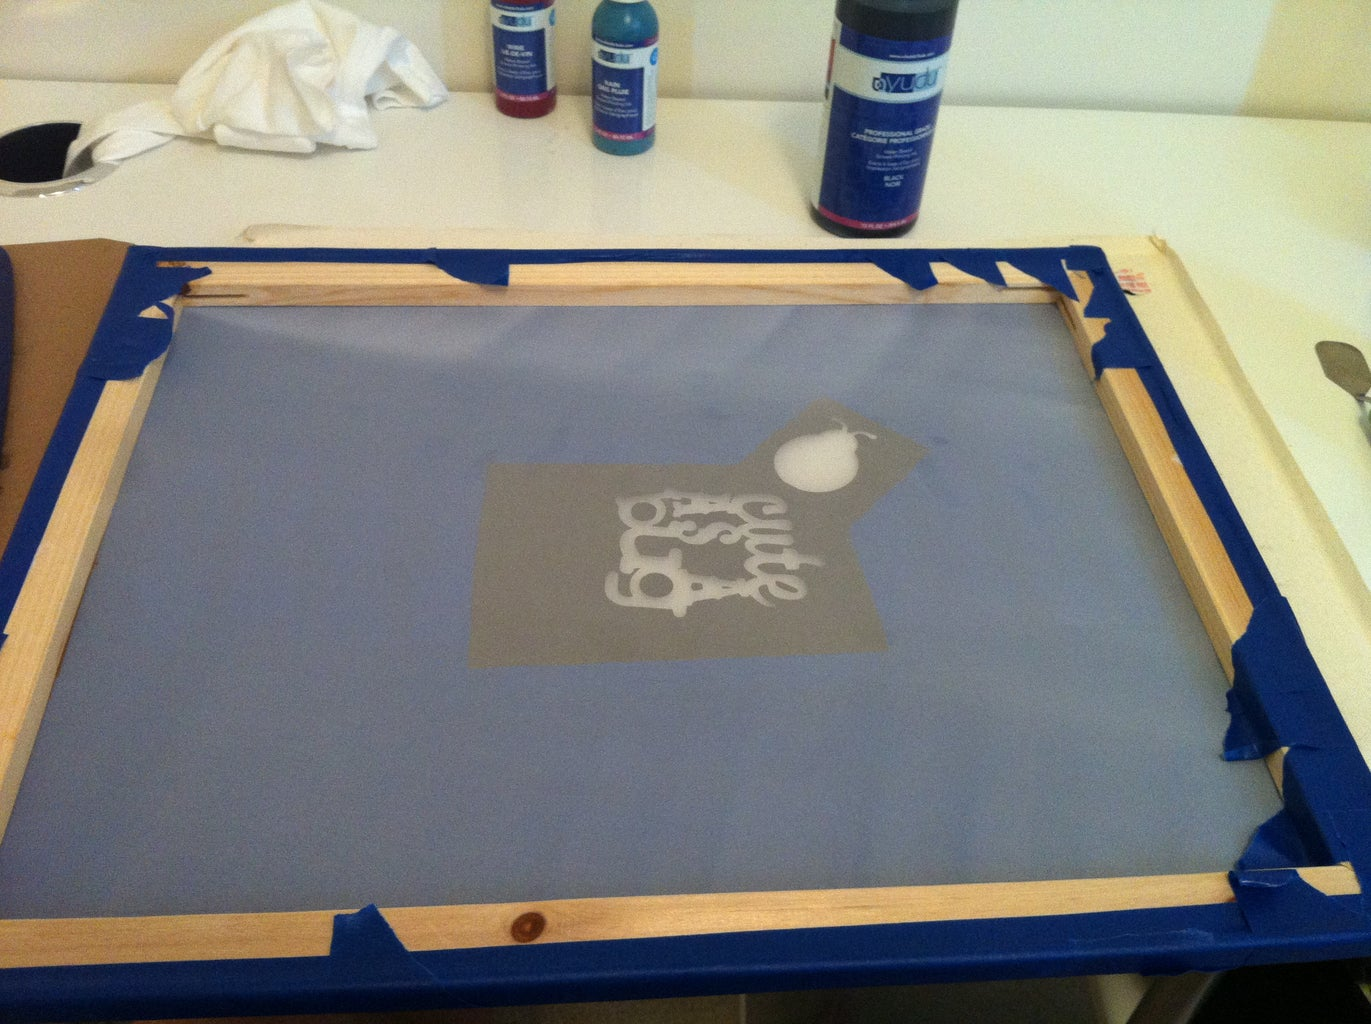 Applying Ink to the Screen.